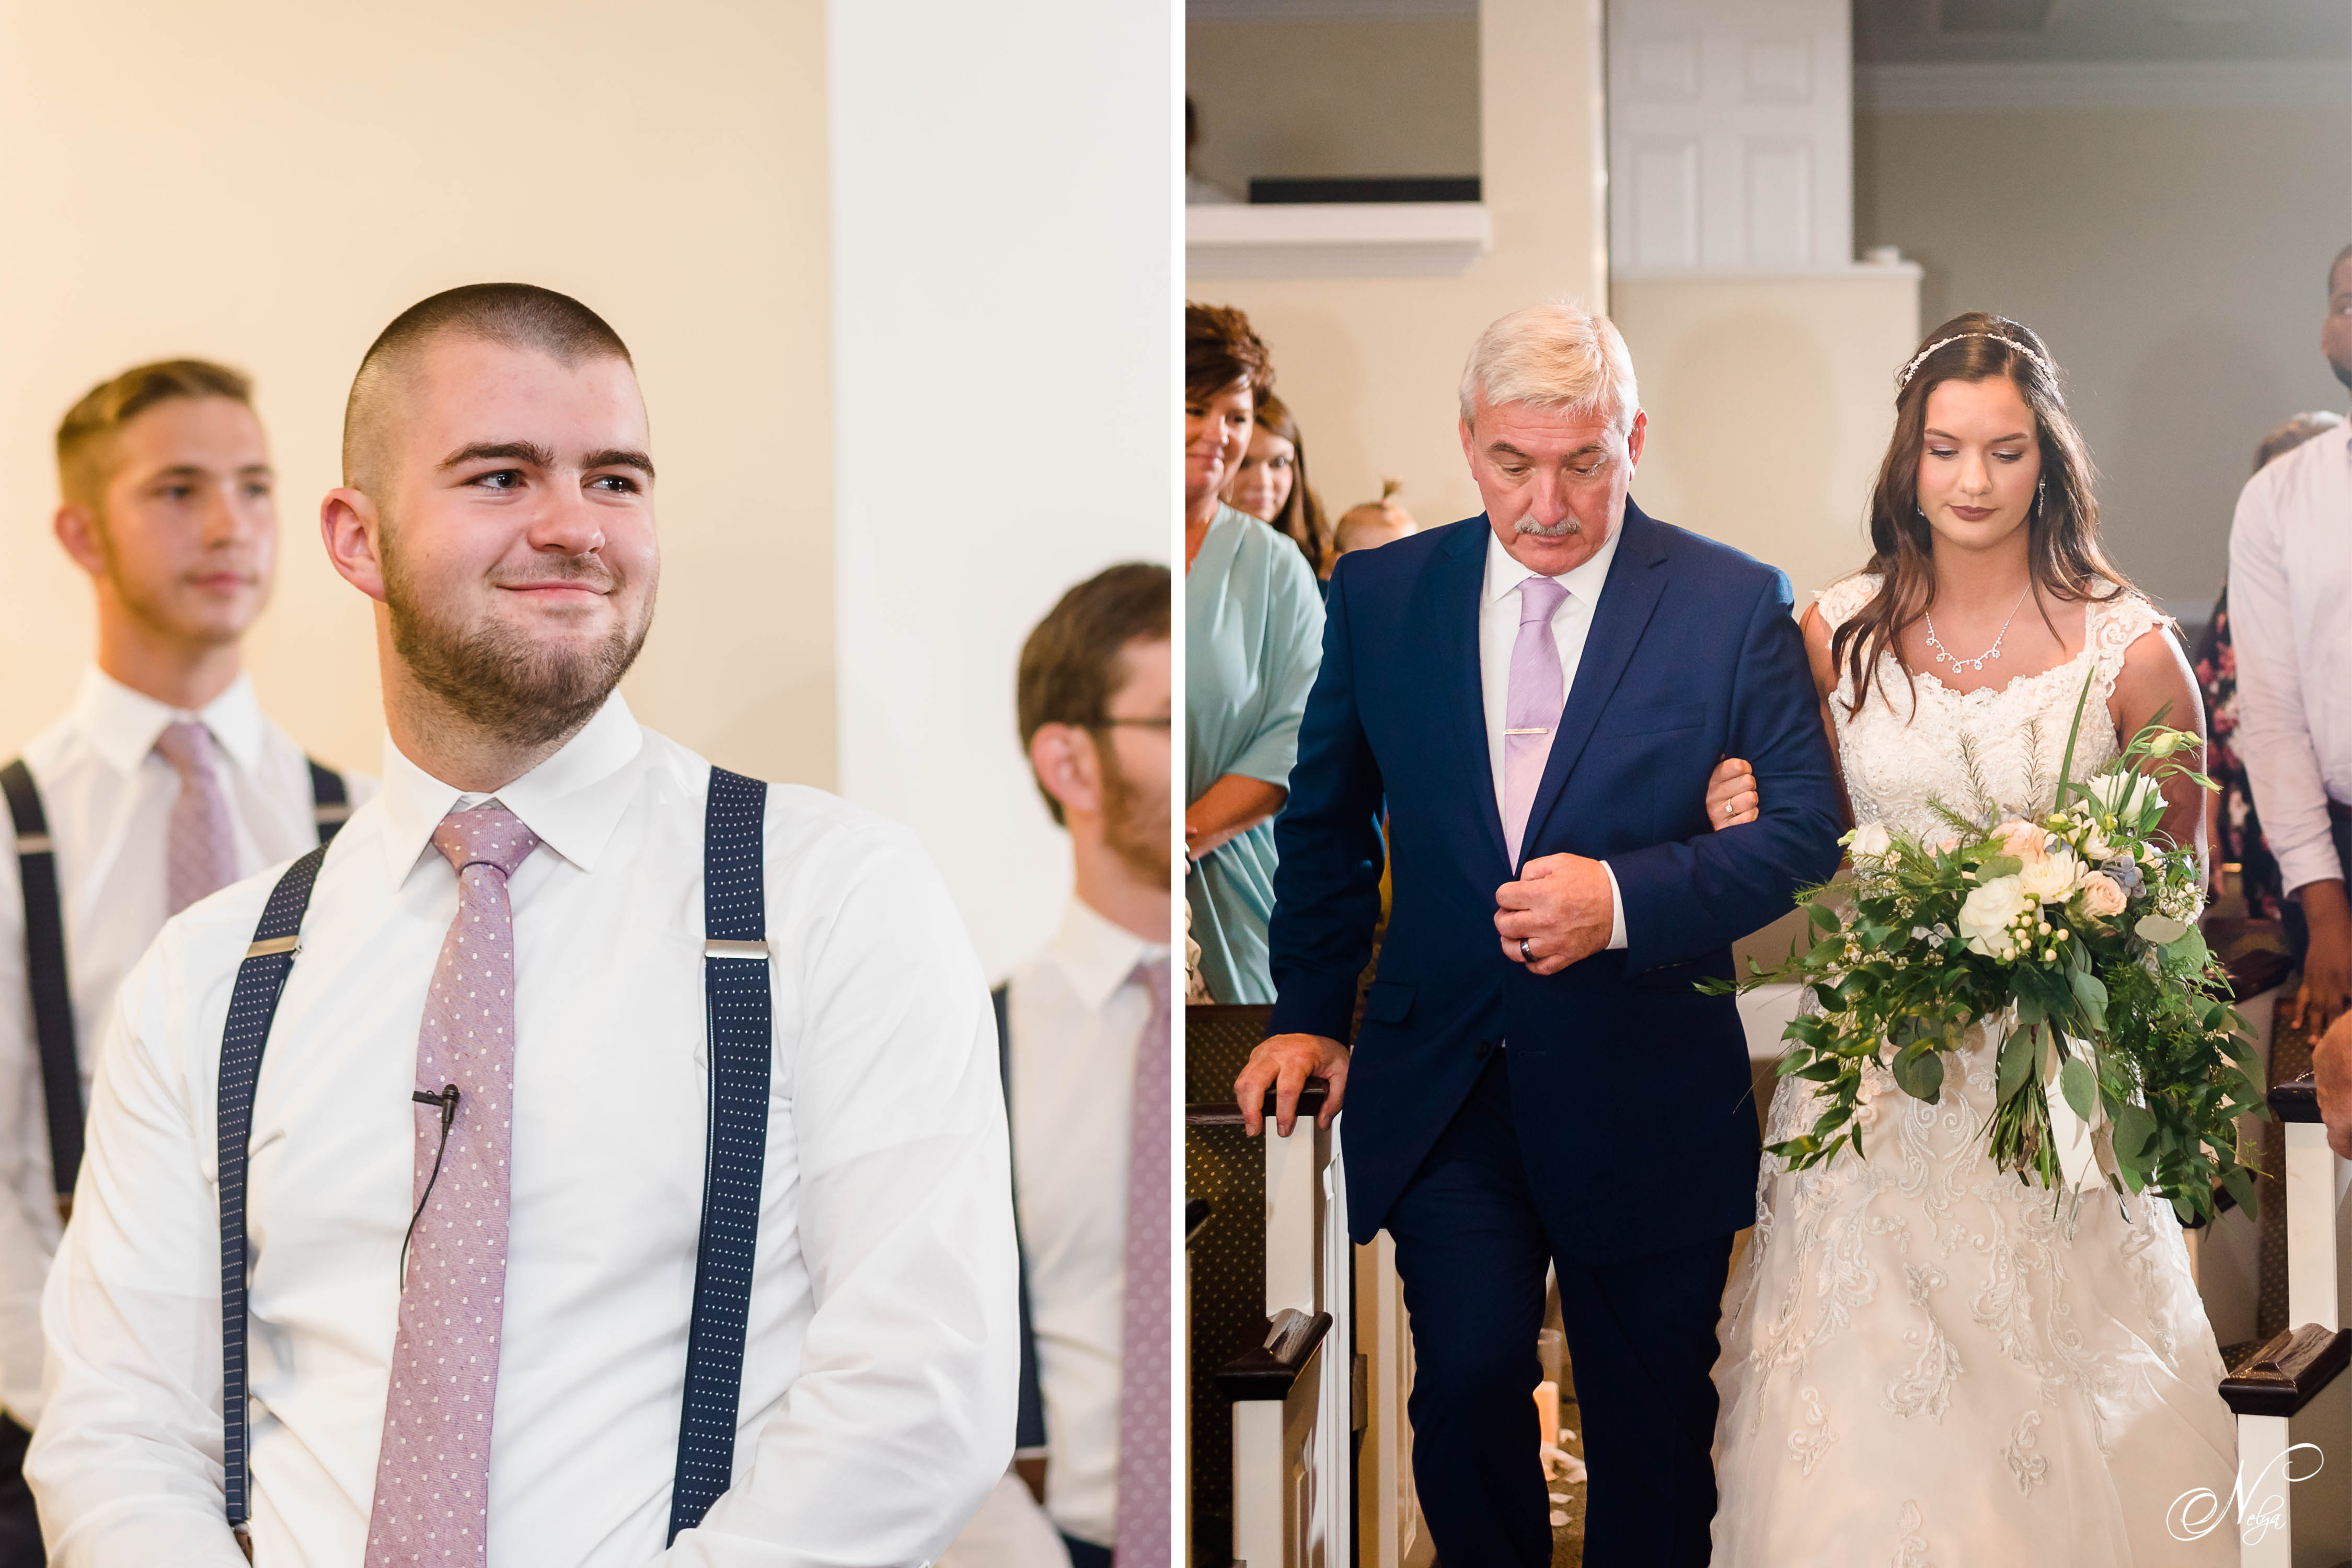 Groom seeing his bride for the first time as she walks down the aisle of their family church. And bride walking in with her dad.